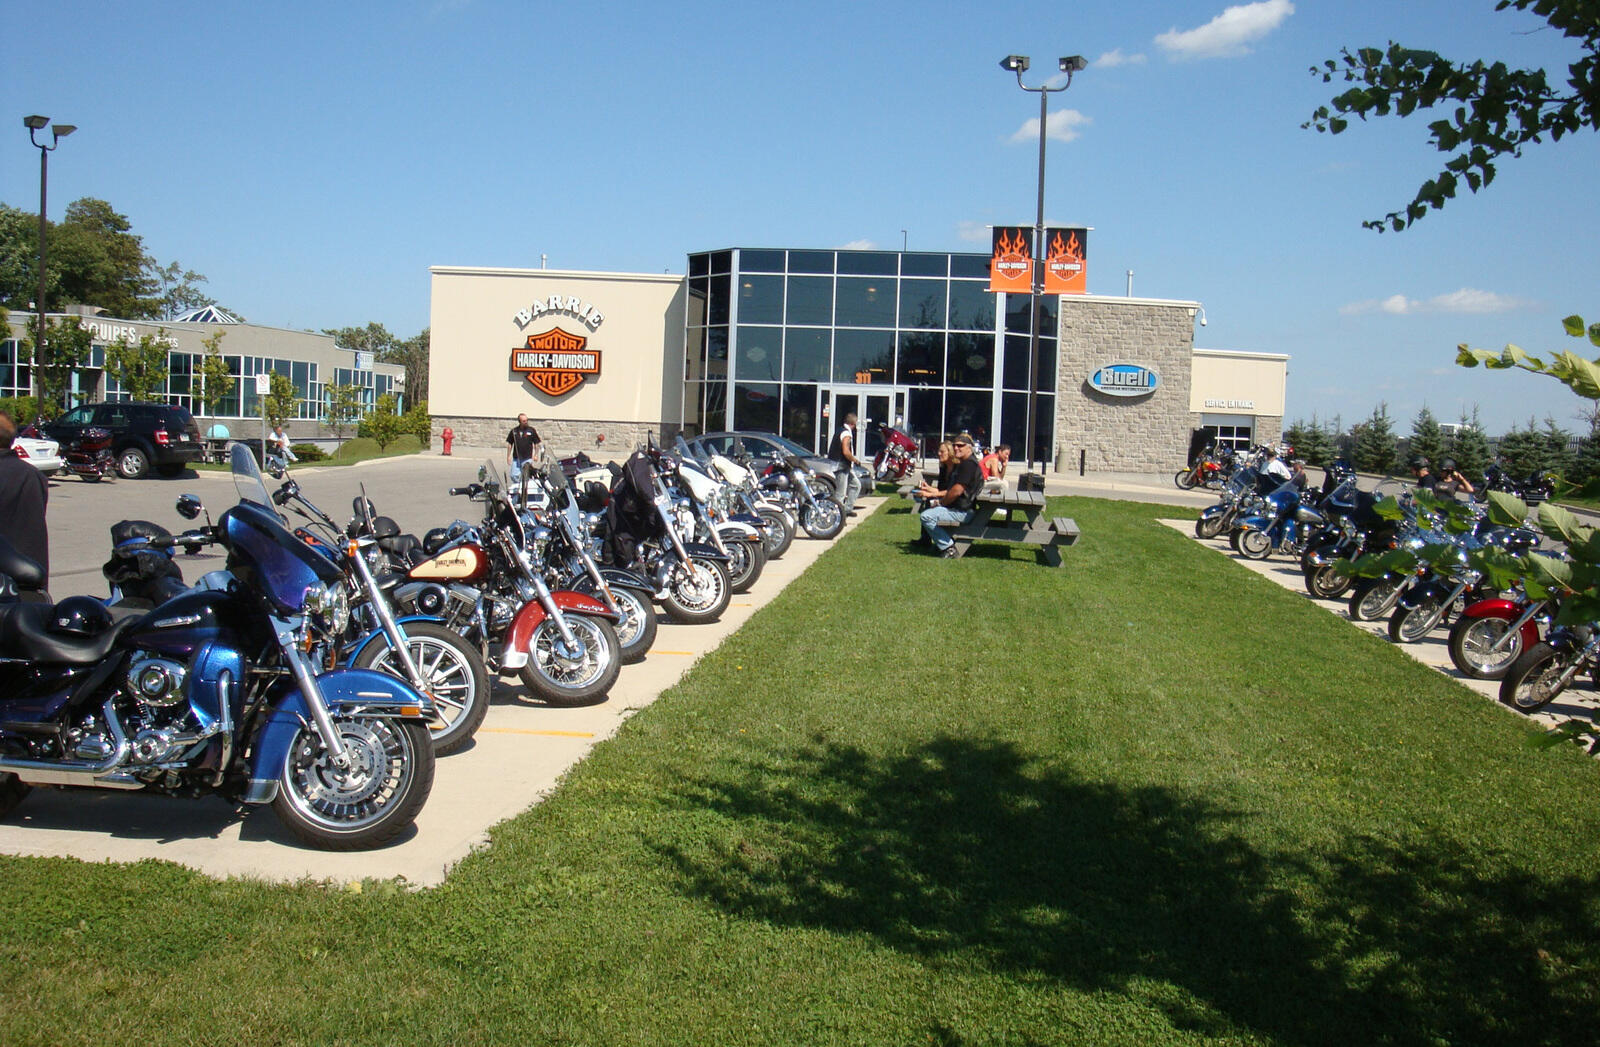 Ontario Motorcycle Dealers and Repair Shops - The Complete